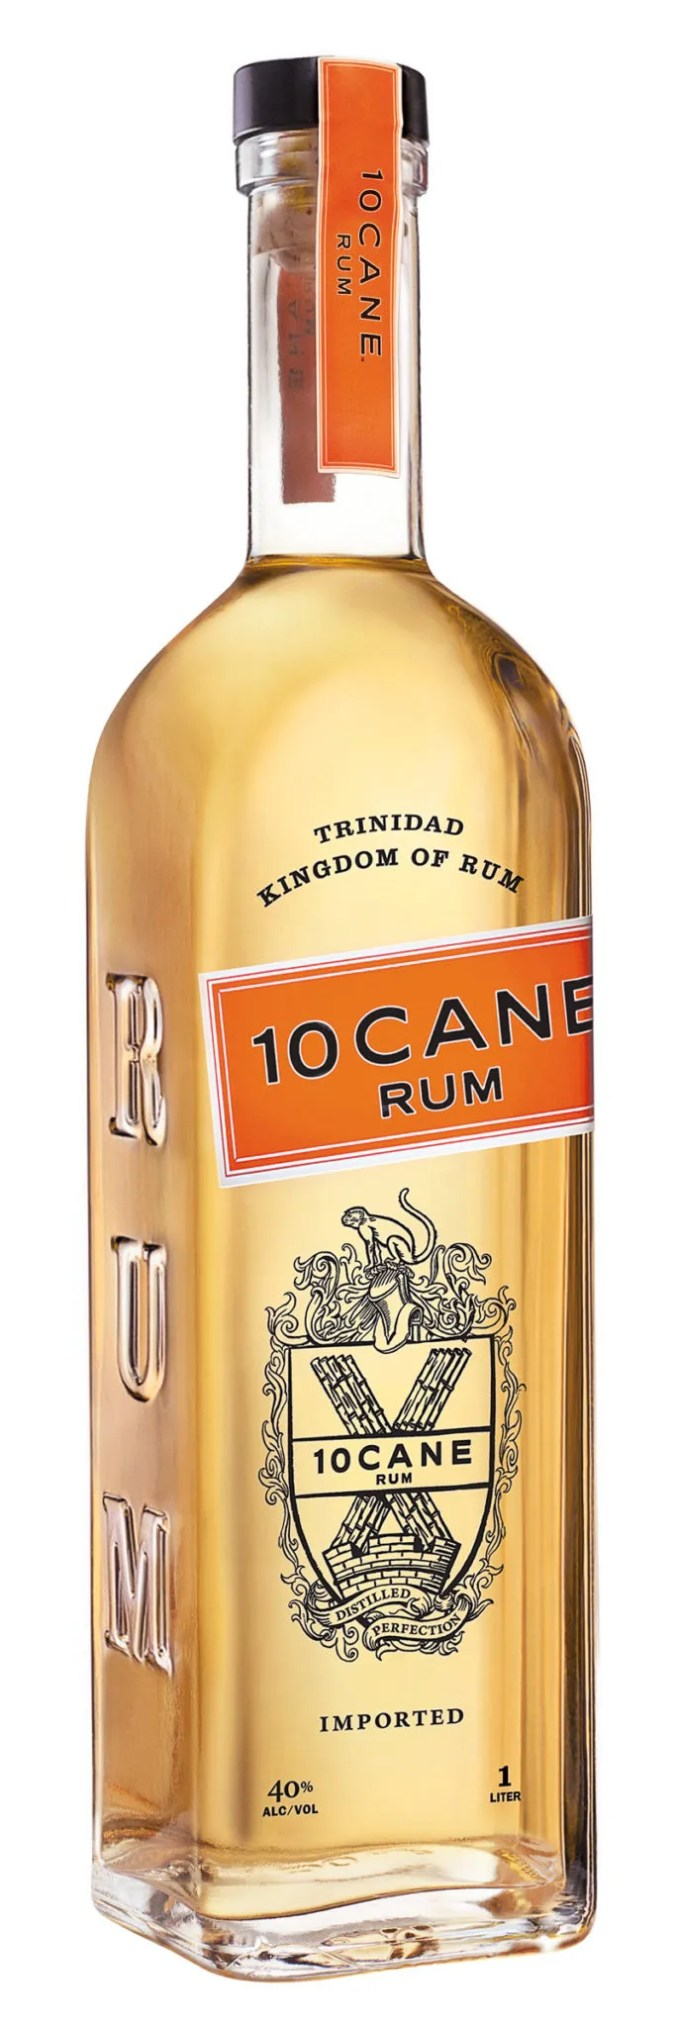 10 Cane white rum from Trinidad